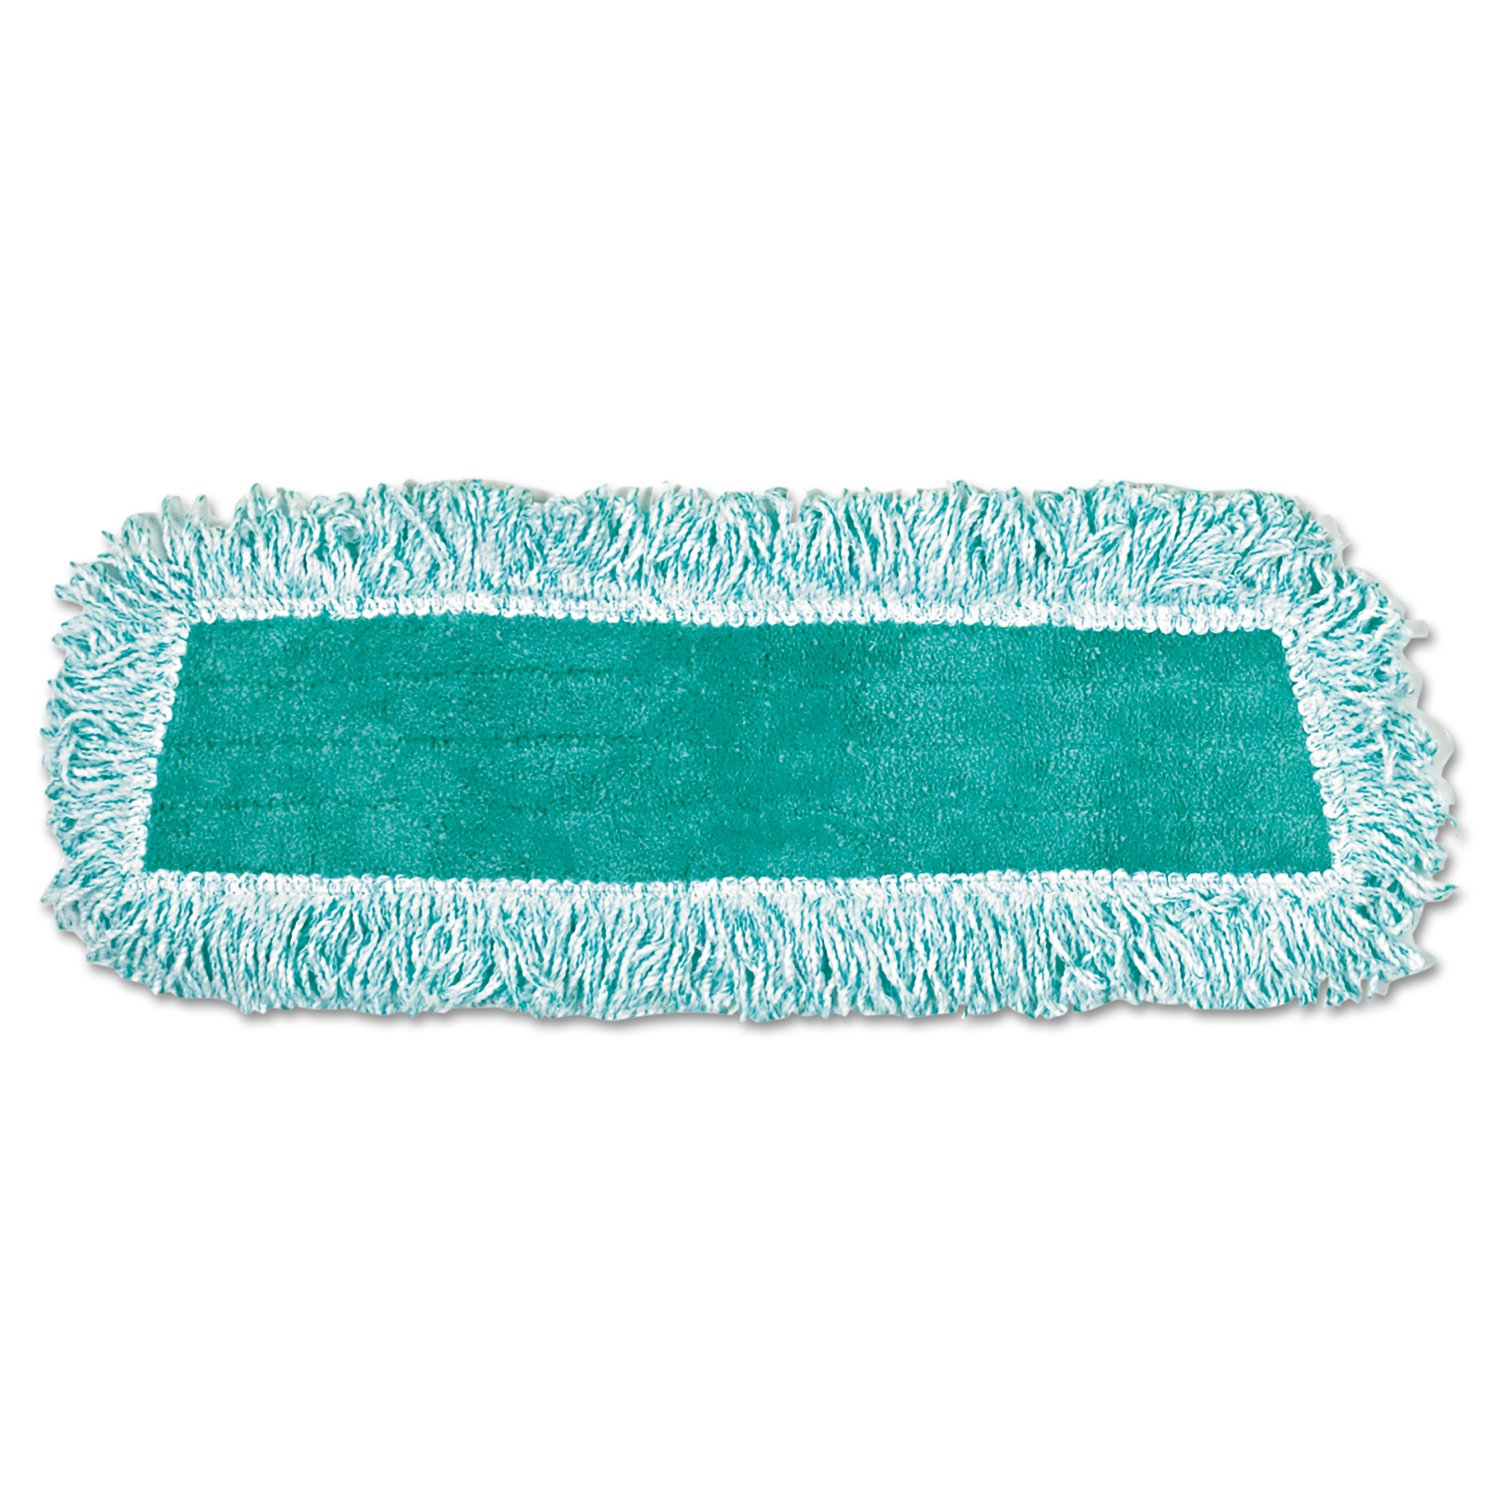 Rubbermaid Commercial RCP Q408 GRE Standard Microfiber Dust Mop with Fringe, Cut-End, 18'' x 5'' (Pack of 12)